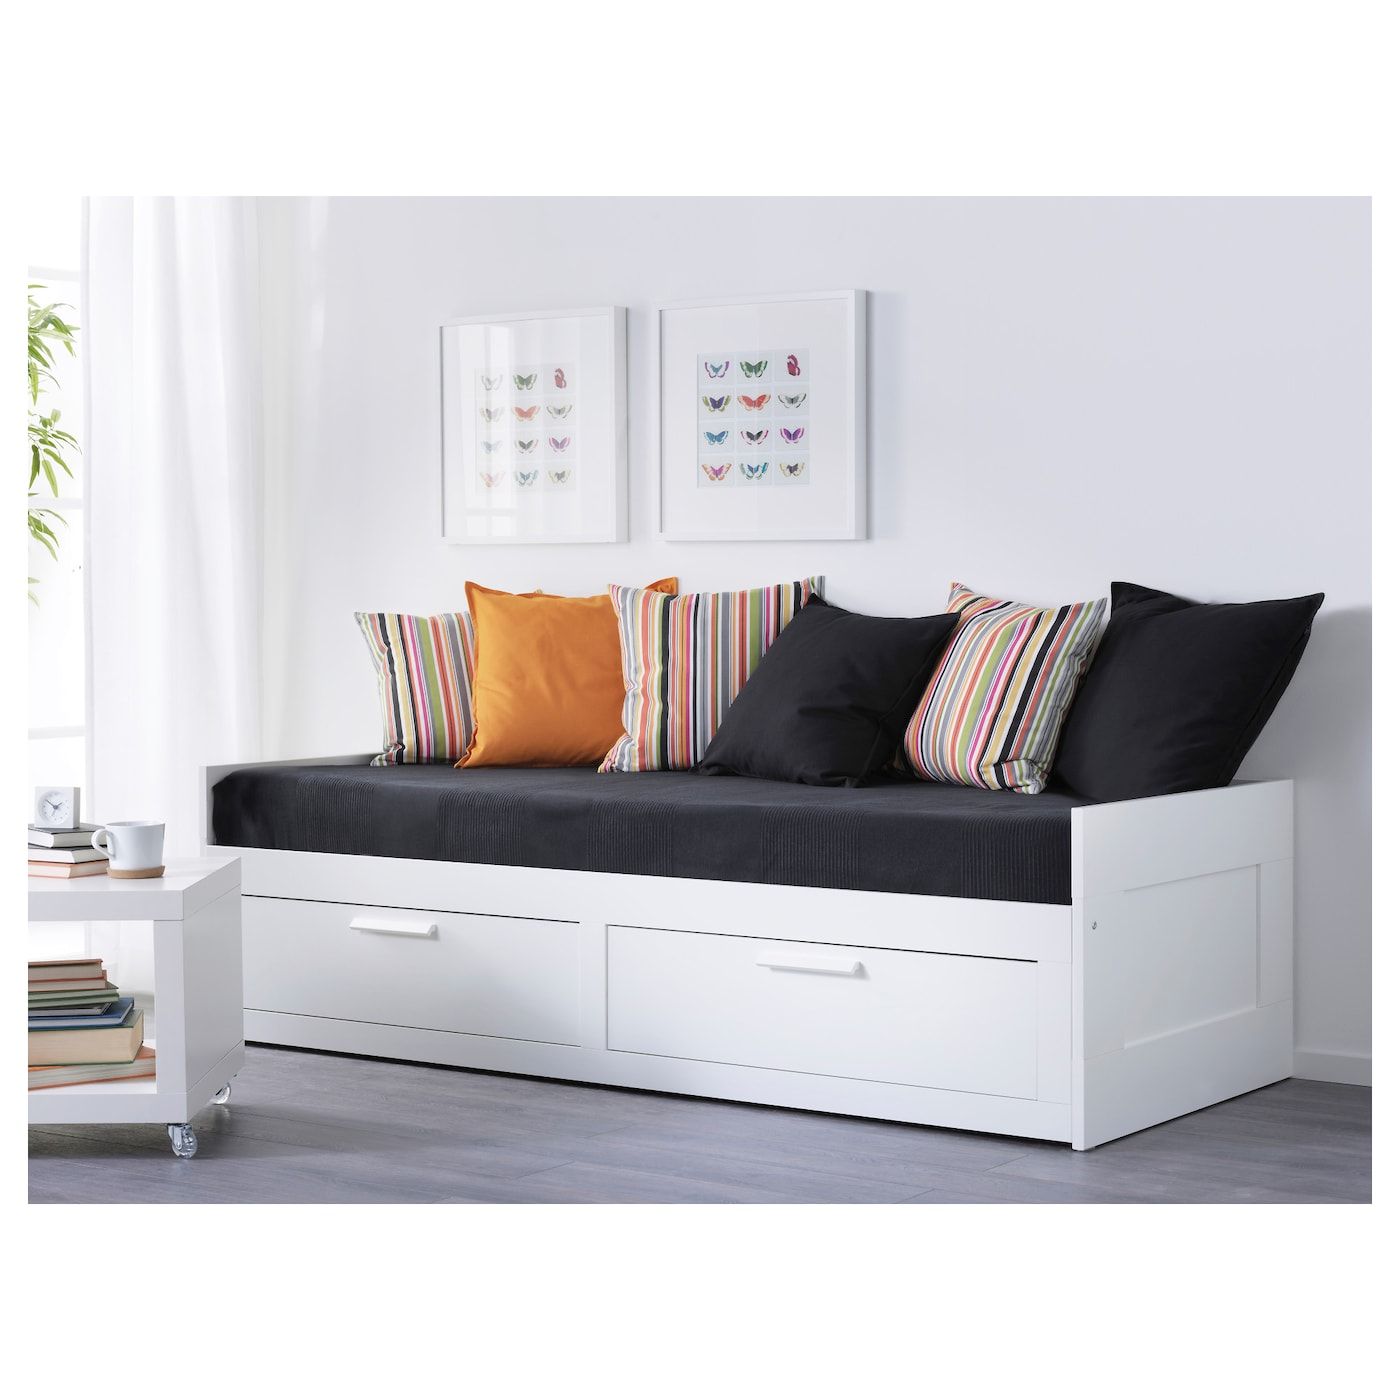 Brimnes day bed w 2 drawers 2 mattresses white moshult - Struttura letto ikea ...